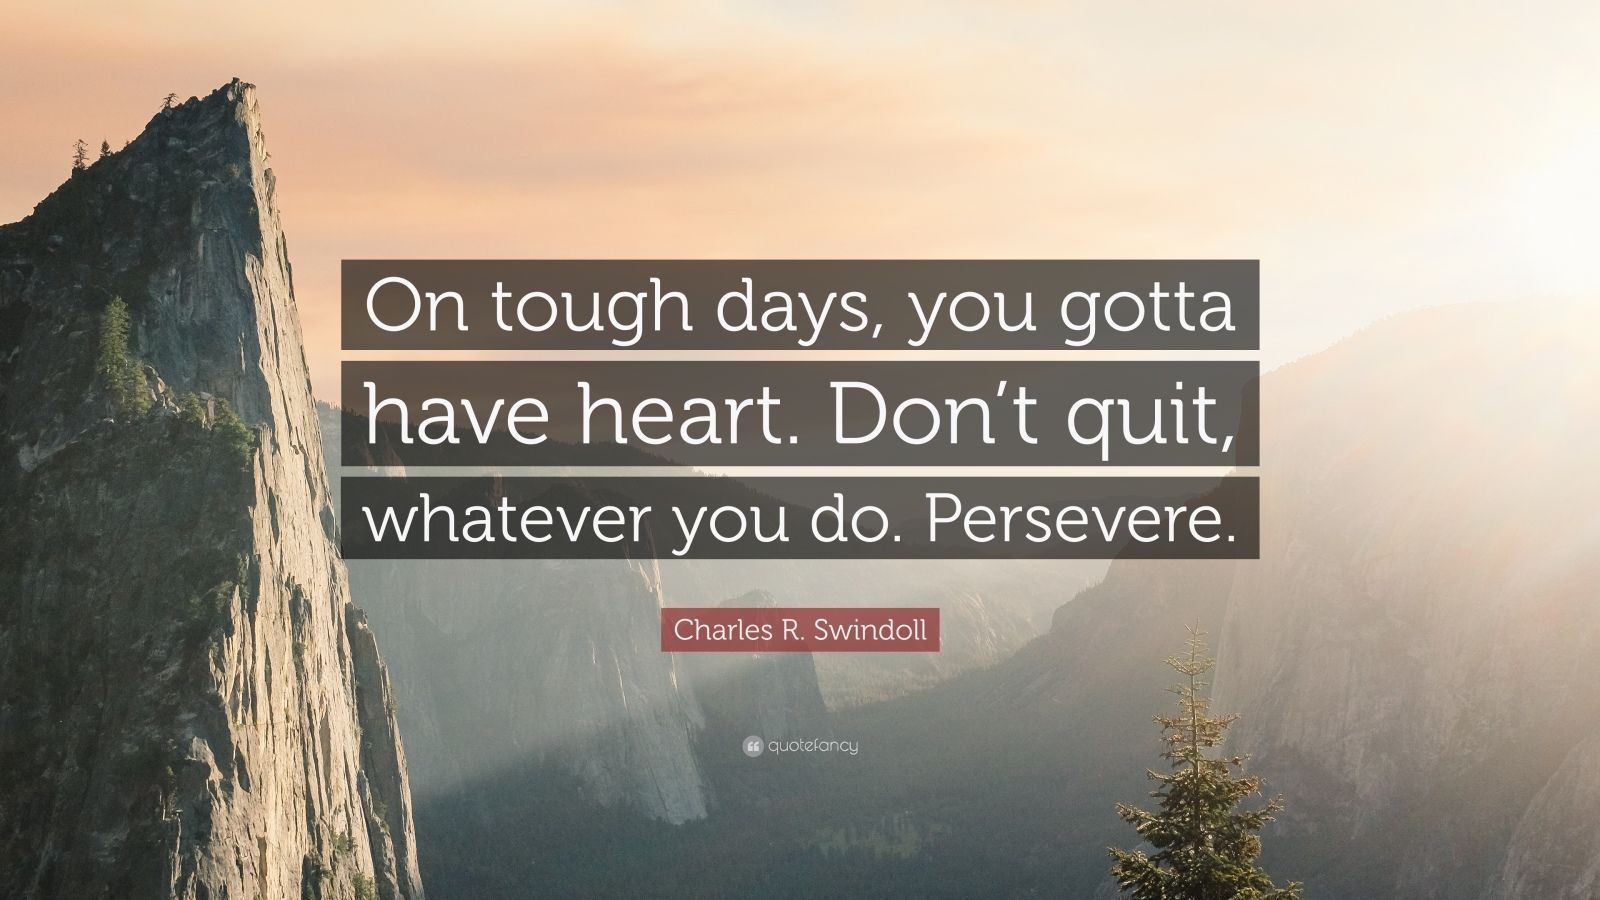 """Charles R. Swindoll Quote: """"On tough days, you gotta have heart. Don't quit, whatever you do. Persevere."""""""